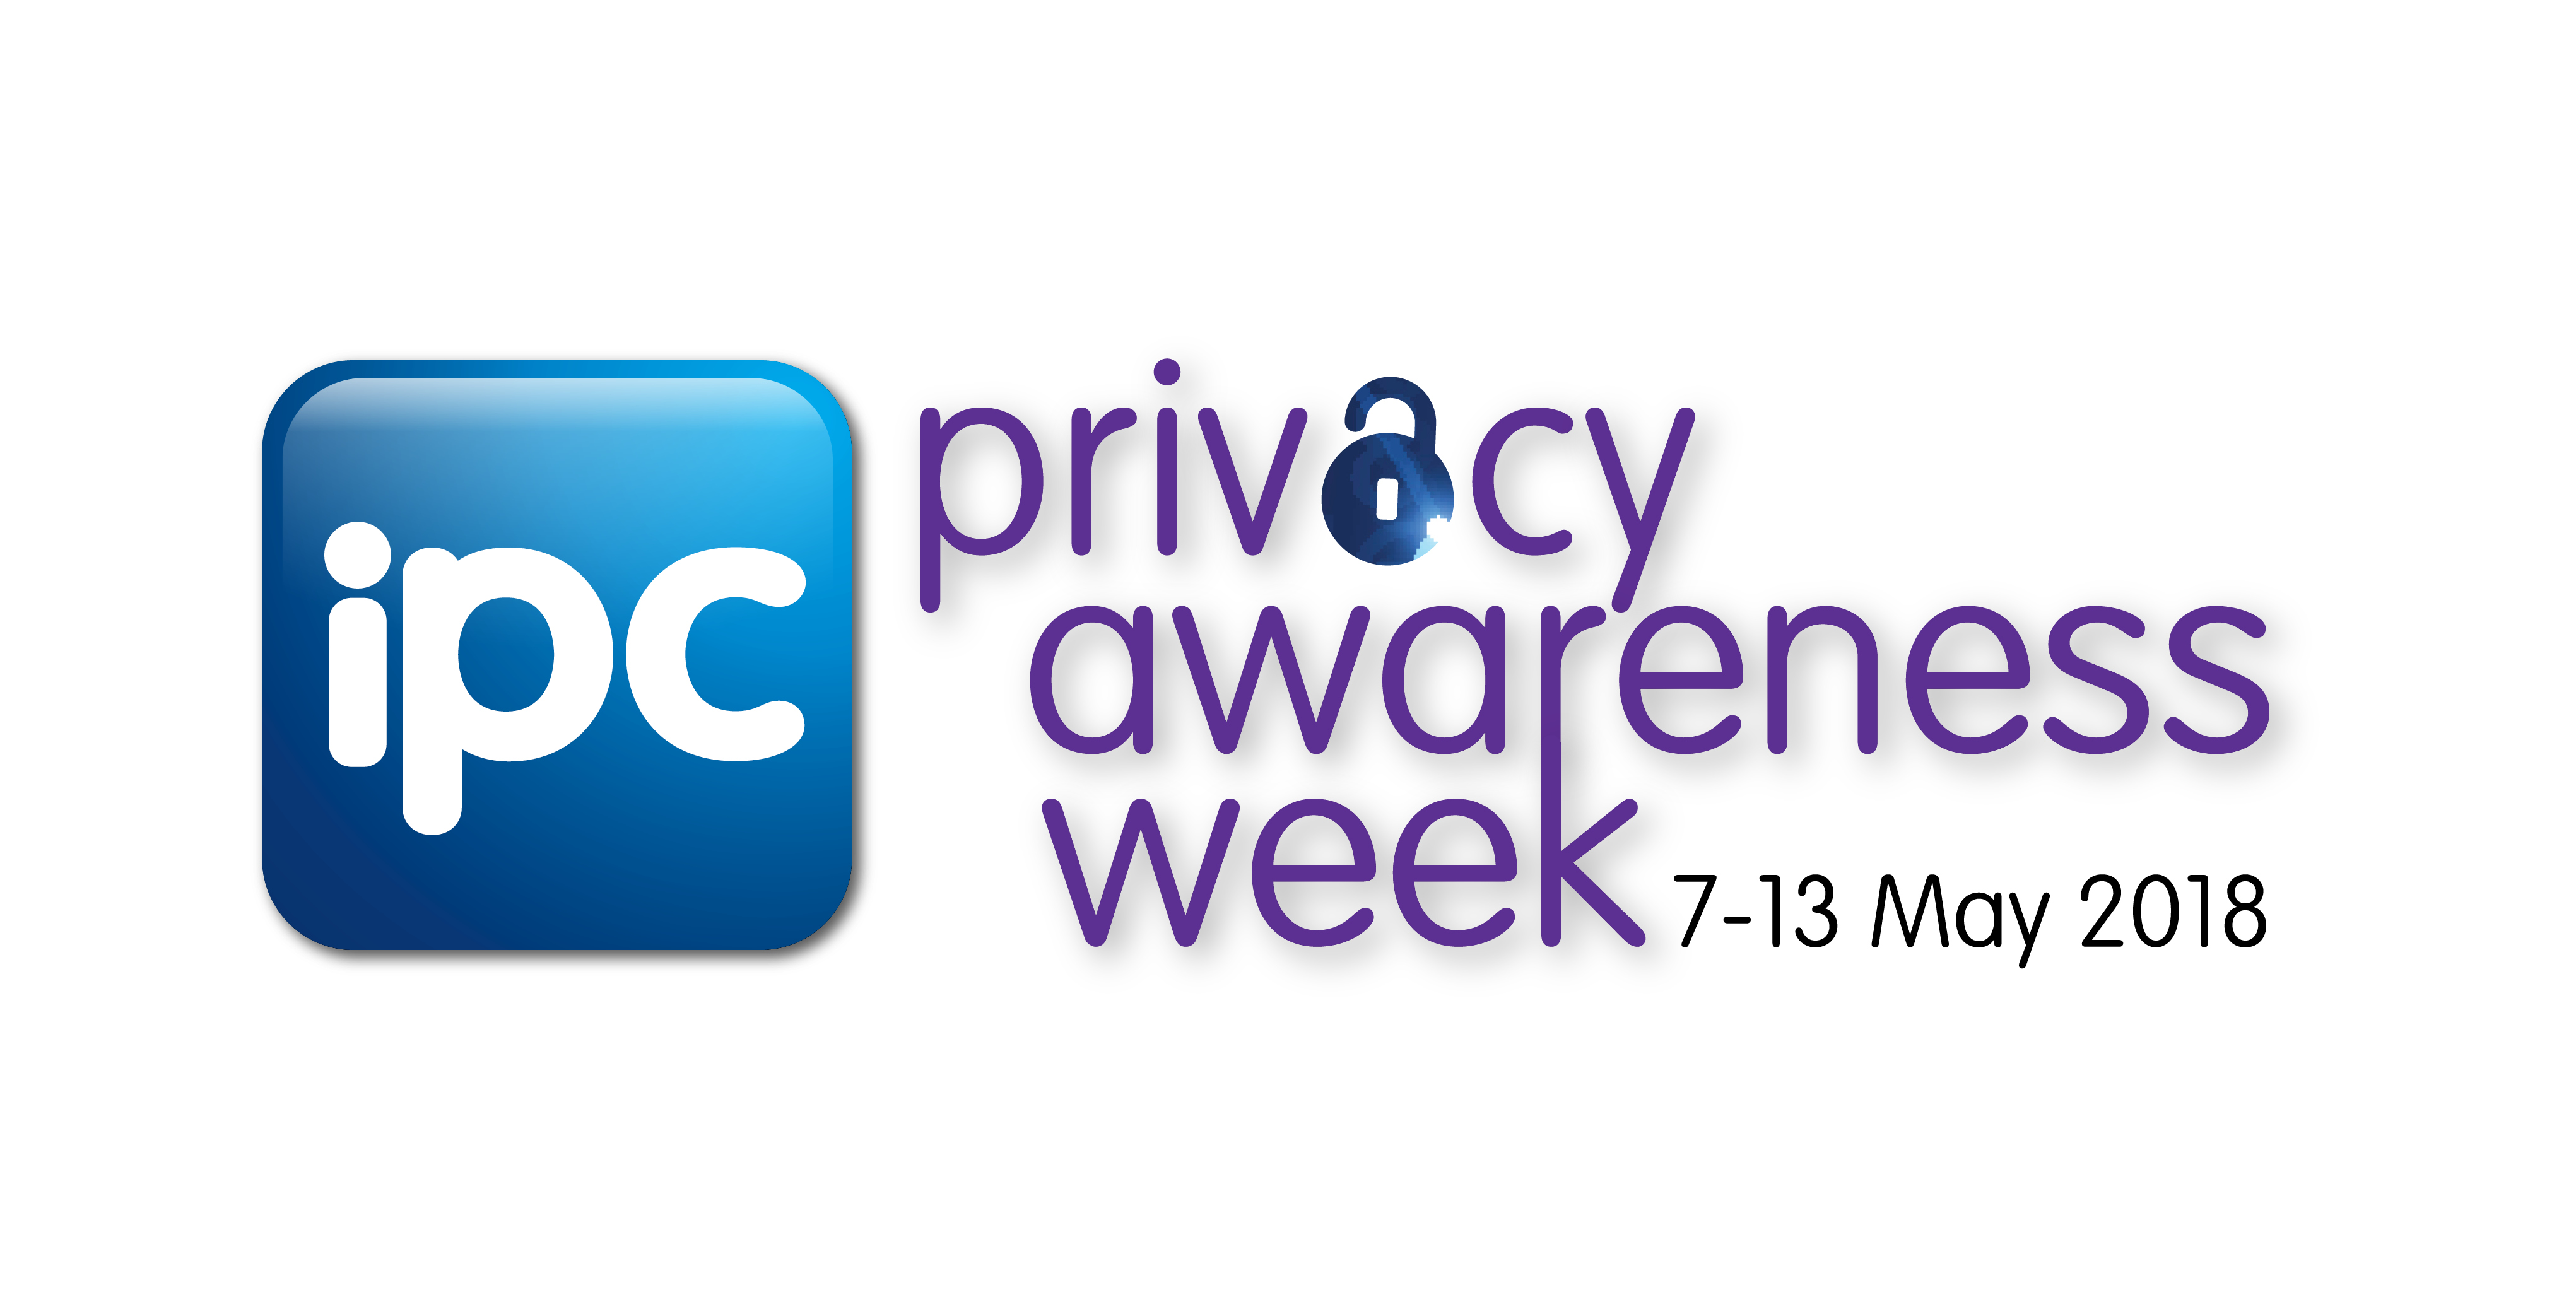 Privacy Awareness Week 2018 logo